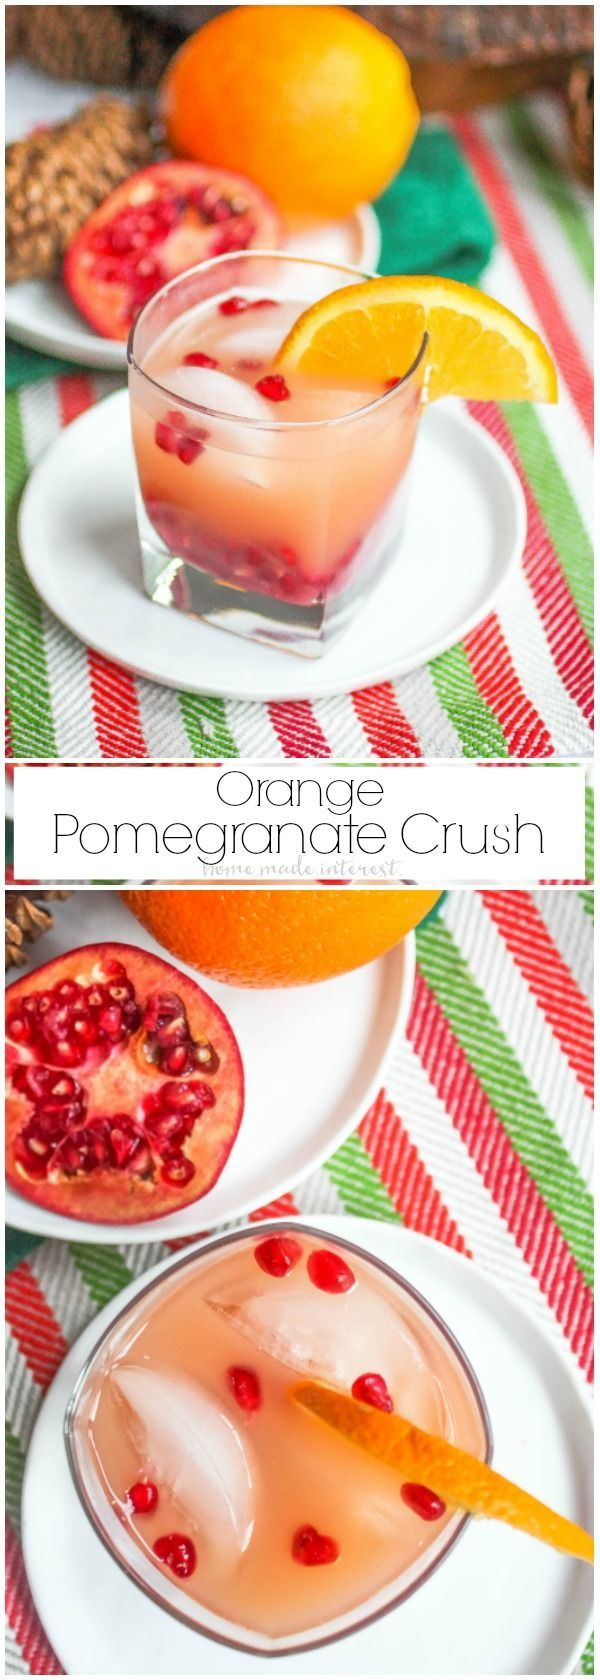 Celebrate on New Year's Eve with this pretty and delicious drink recipe! This Orange Pomegranate Crush is an easy drink recipe made with orange, pomegranate, vodka and triple sec. It is a great easy drink recipe for New Year's Eve!